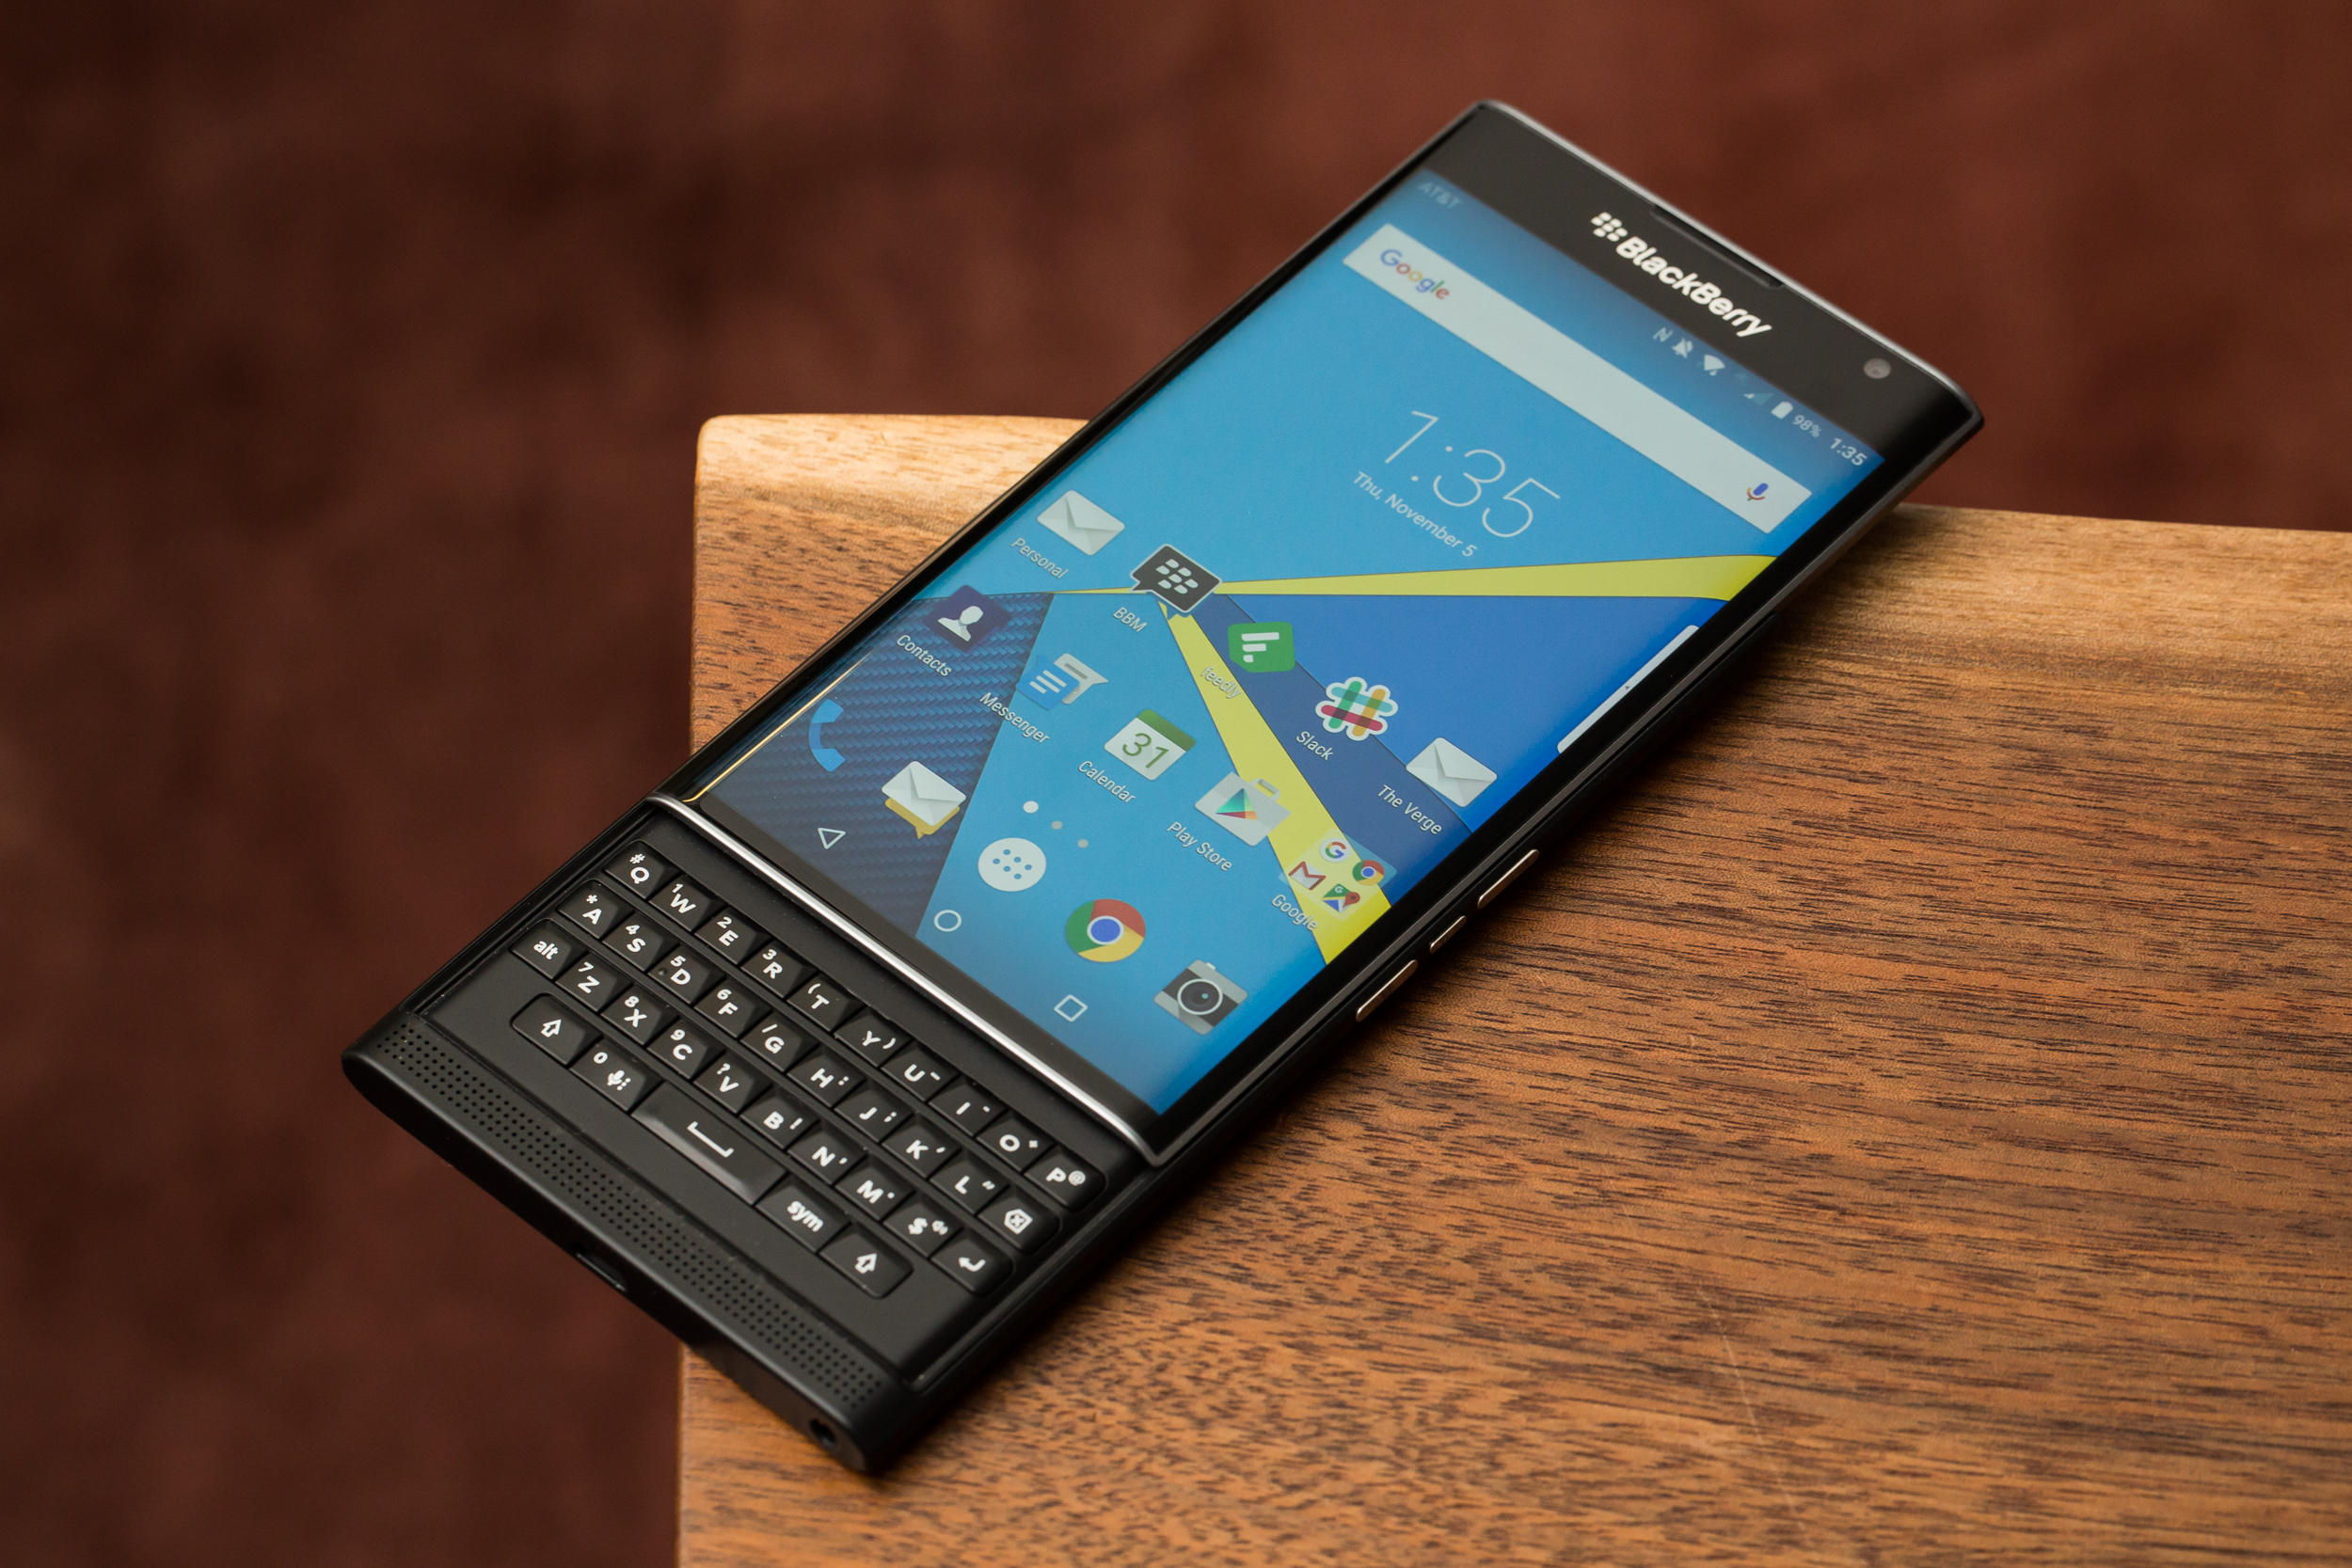 $379.99 Blackberry Priv AT&T Unlocked Smartphone - Black (U.S. Warranty)